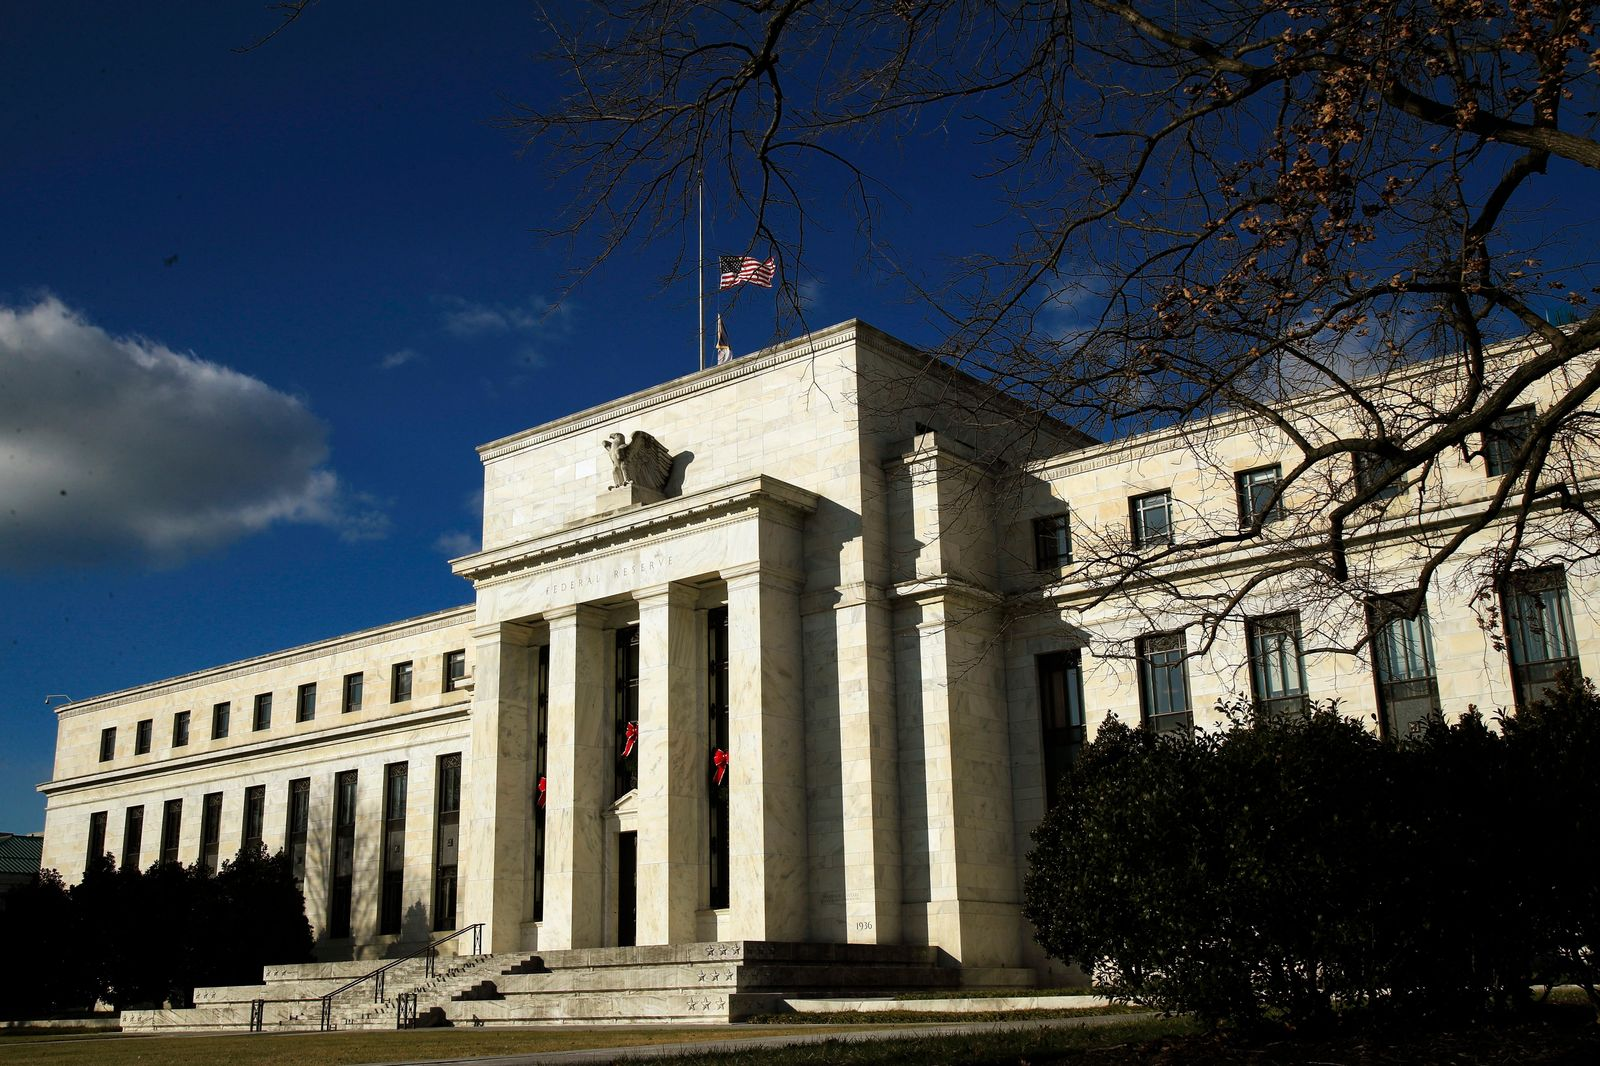 FILE - This Dec. 24, 2018, file photo shows the Federal Reserve building during a partial government shutdown in Washington. (AP Photo/Manuel Balce Ceneta, File)